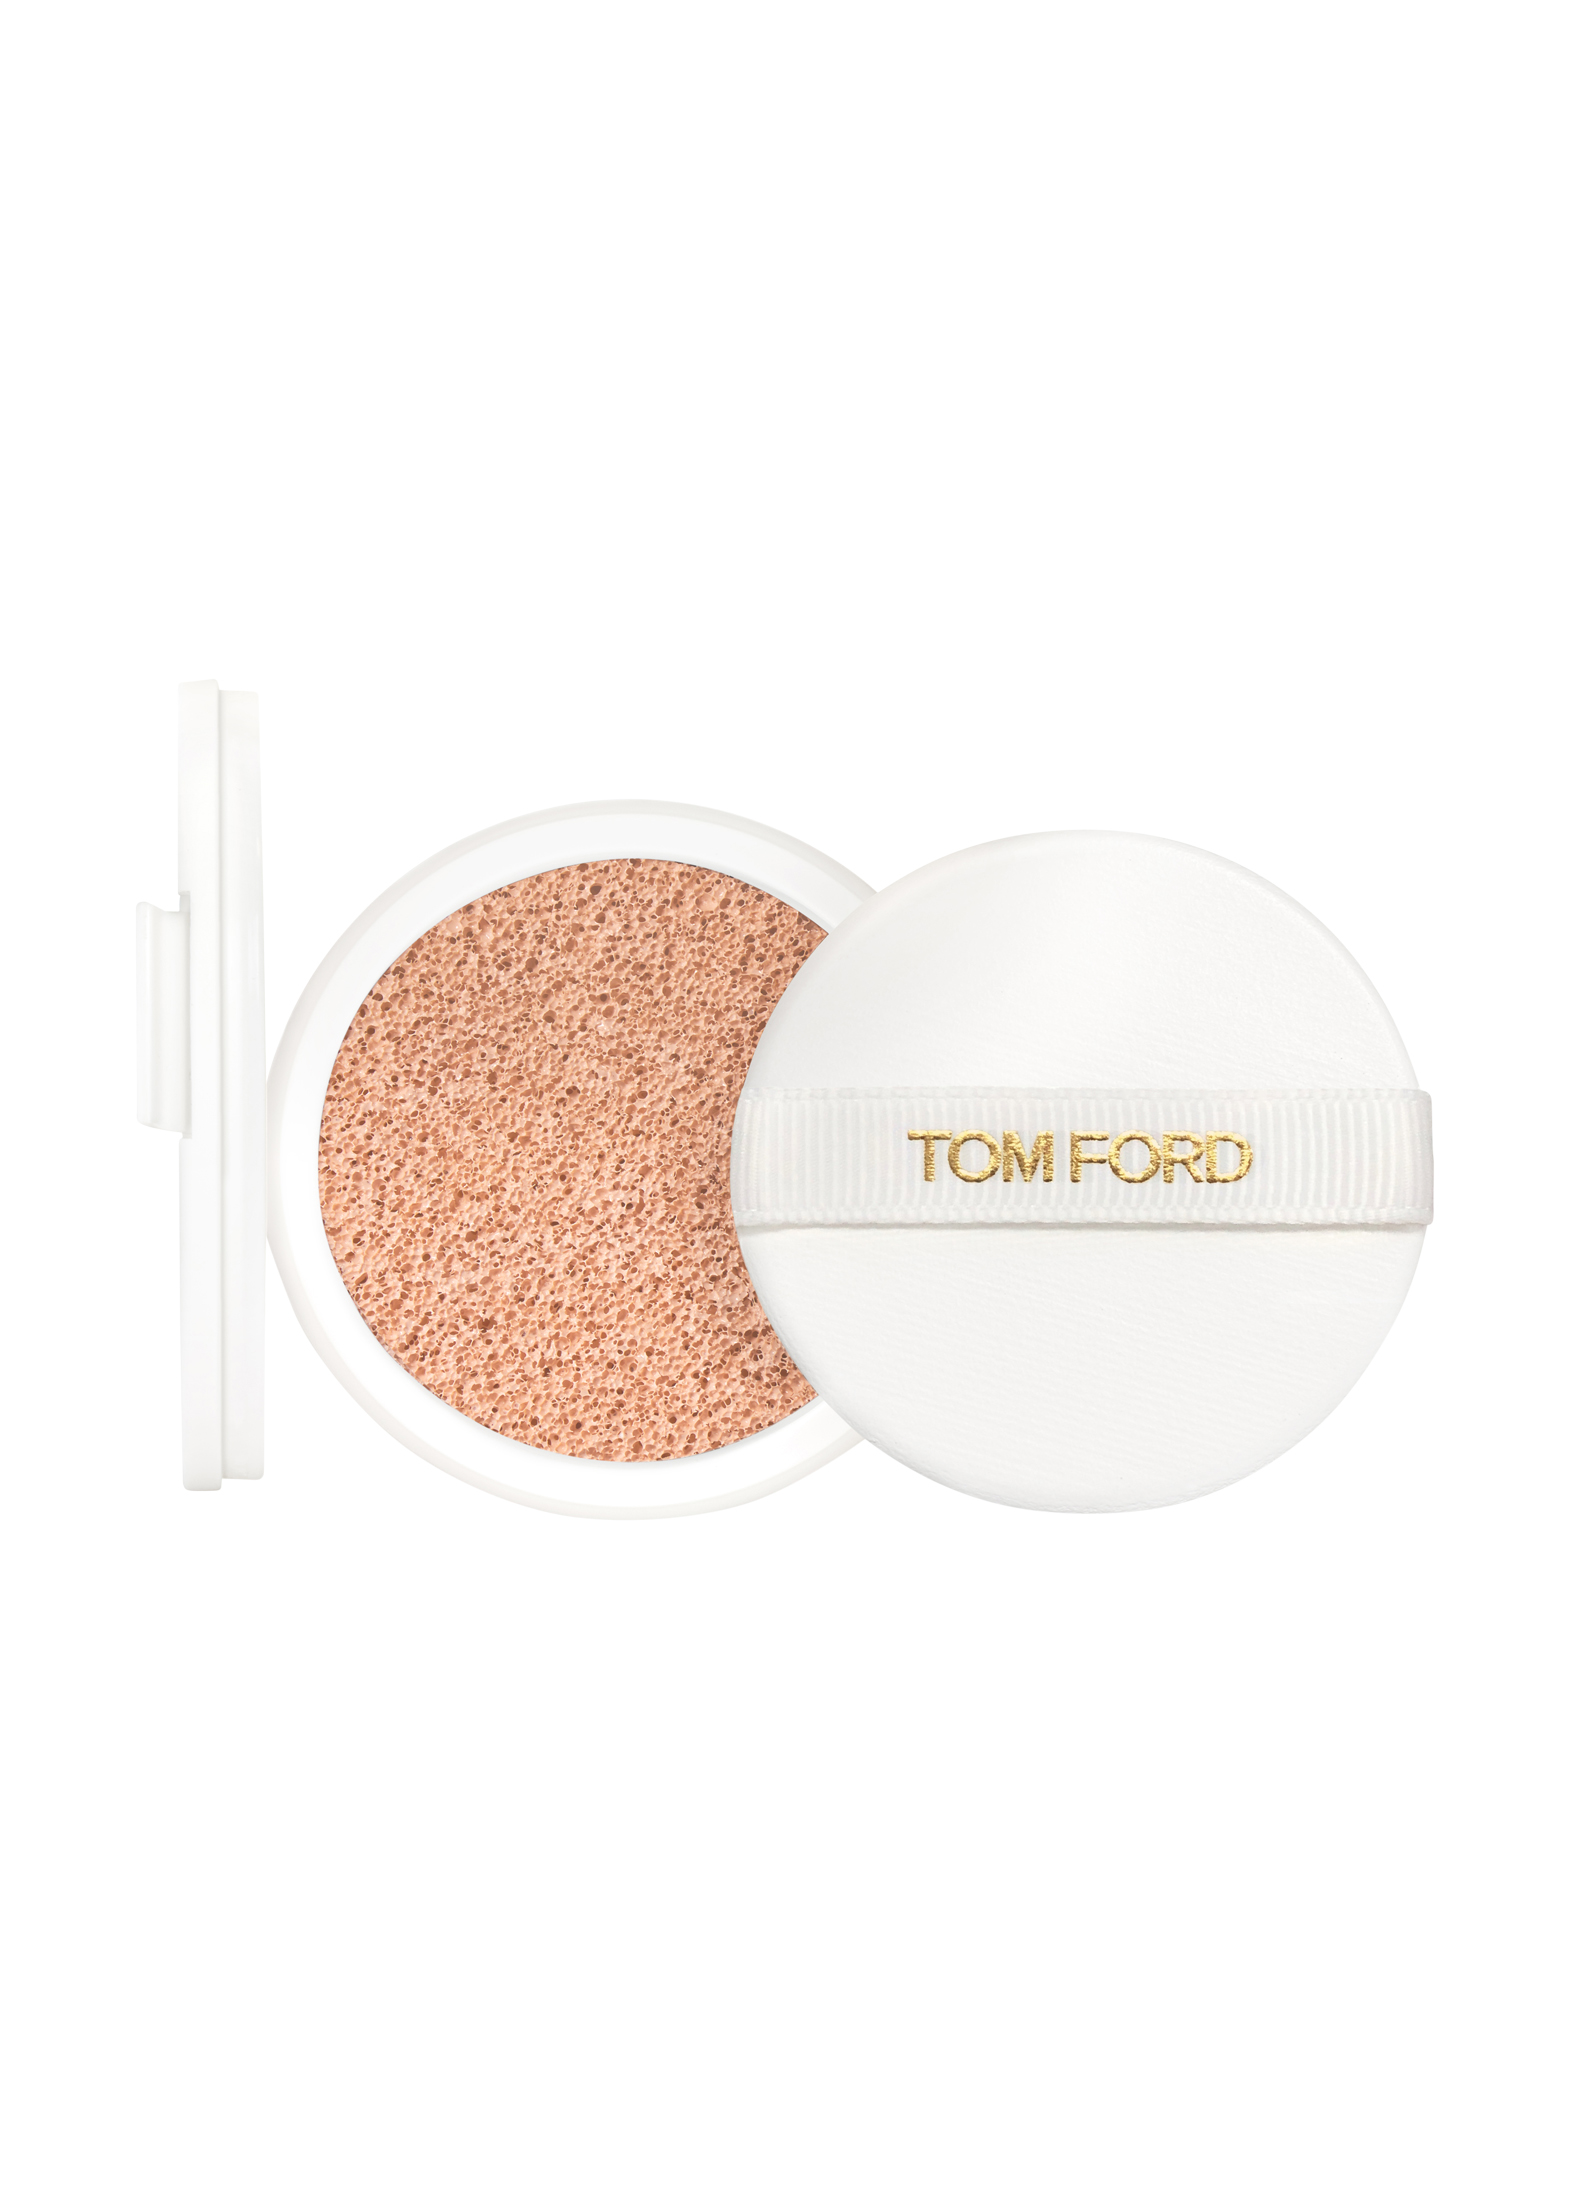 Tom Ford Glow Tone Up Foundation - Refill, 12g 0.5 PORCELAIN image number 0